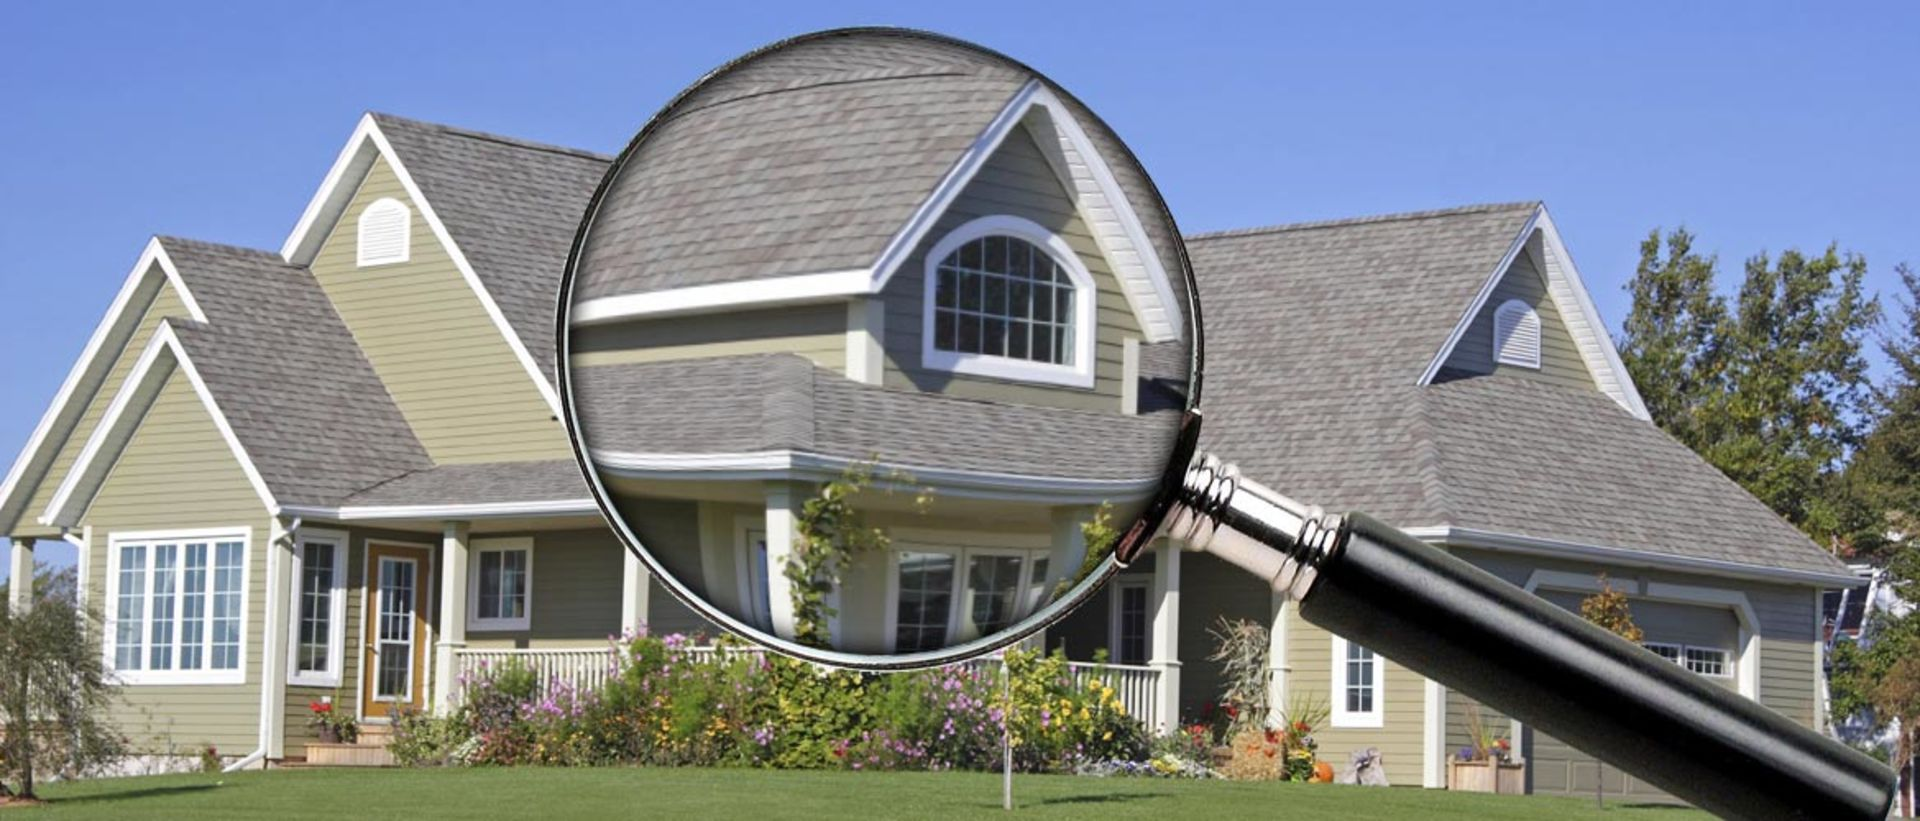 3 Biggest Home Inspection Deal Breakers in Johnson County Kansas